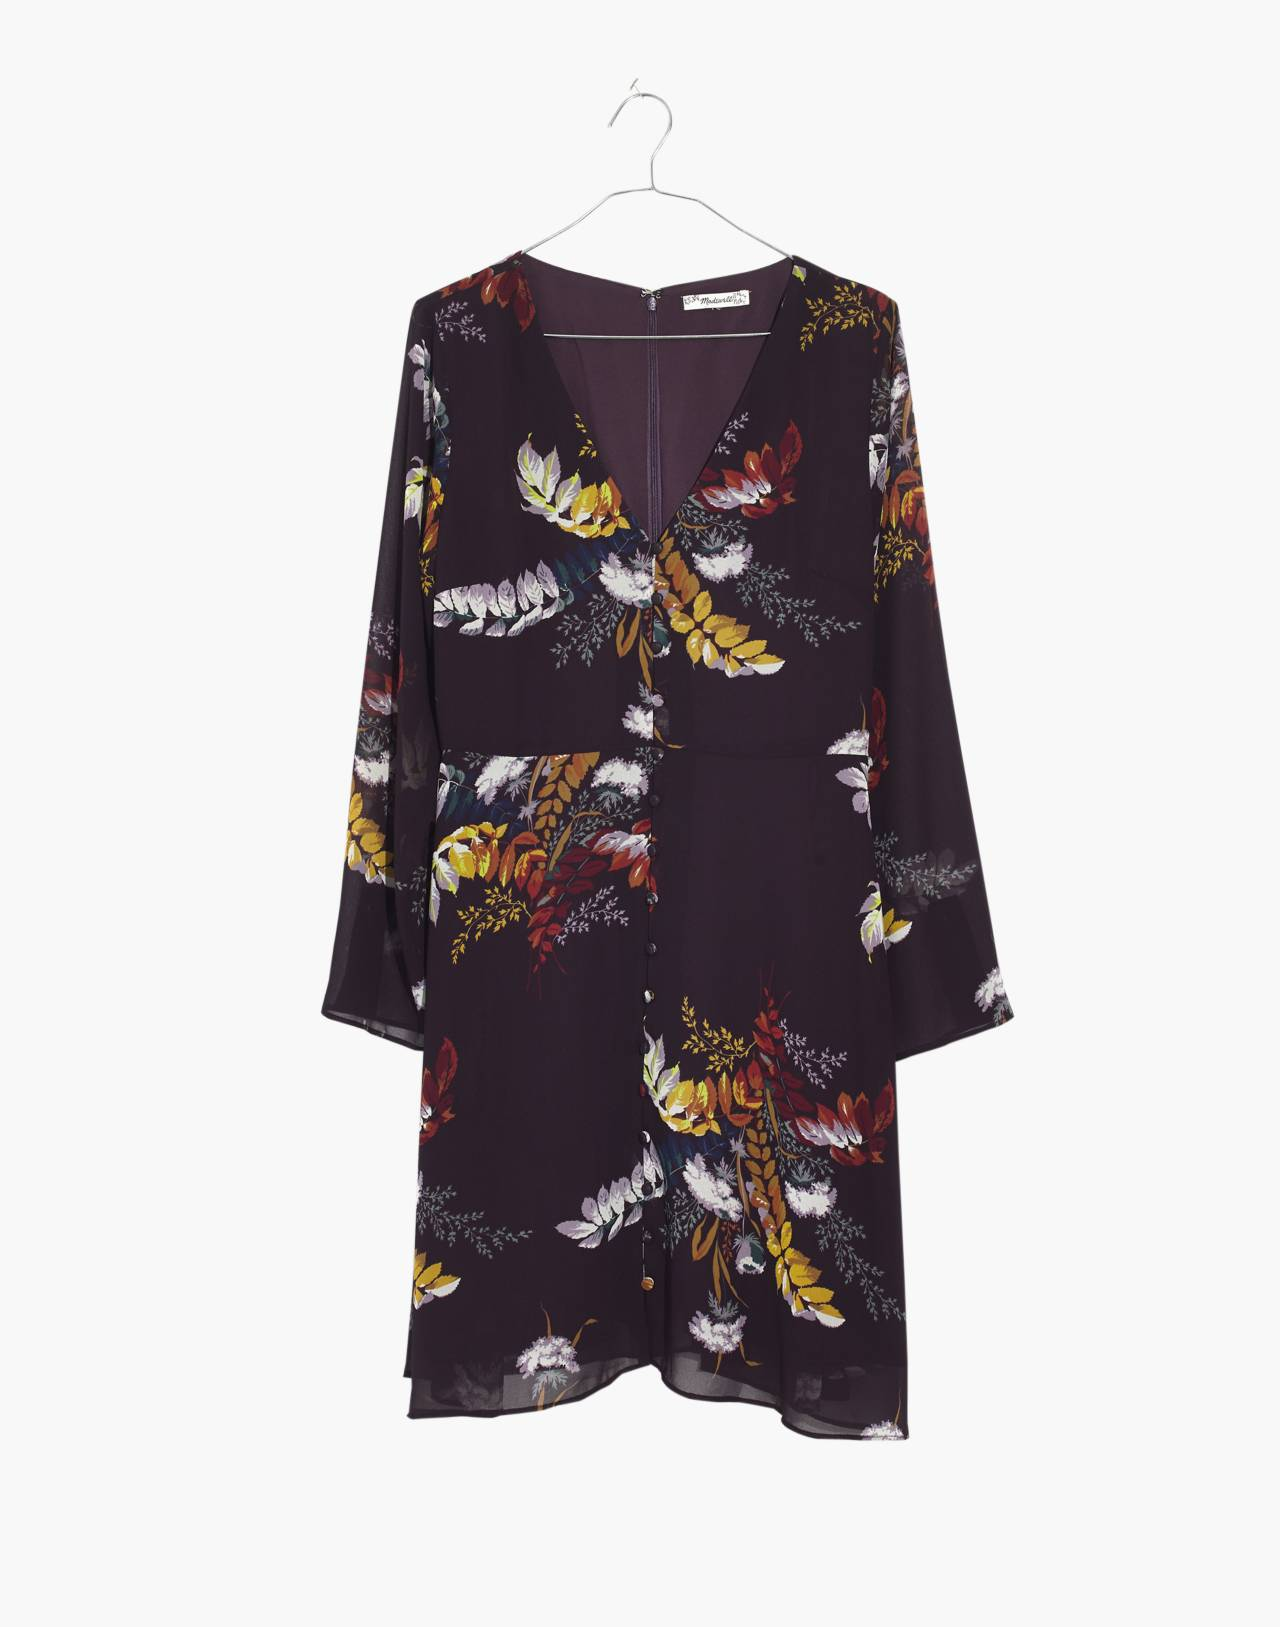 Lilyblossom Button-Front Dress in Blooming Oasis in harvest dark eggplant image 4